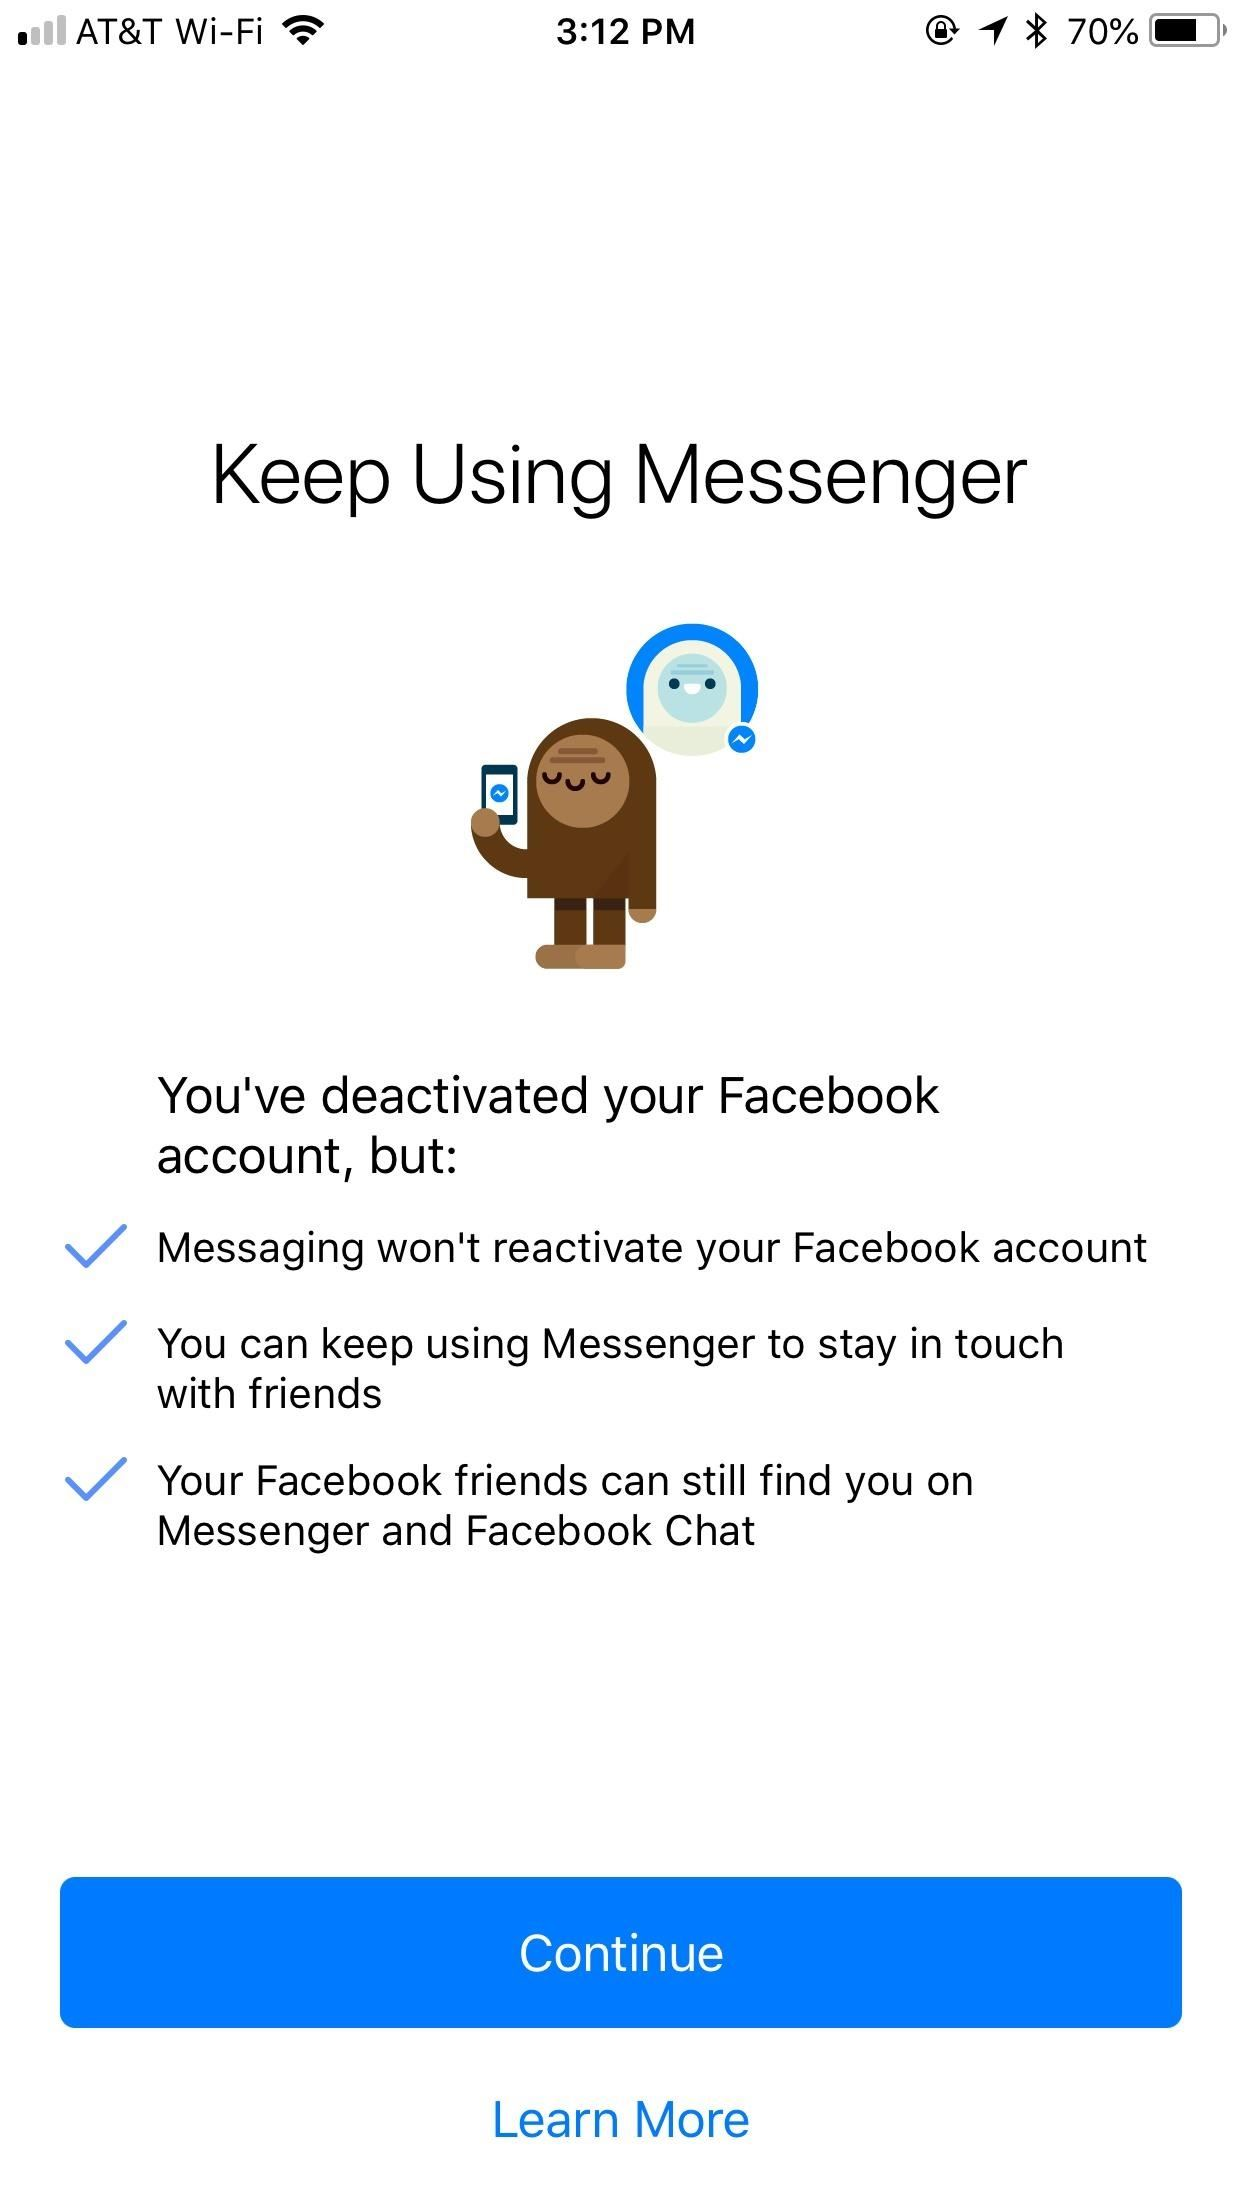 Facebook Messenger 101: How to Keep Your Account When Deactivating Facebook